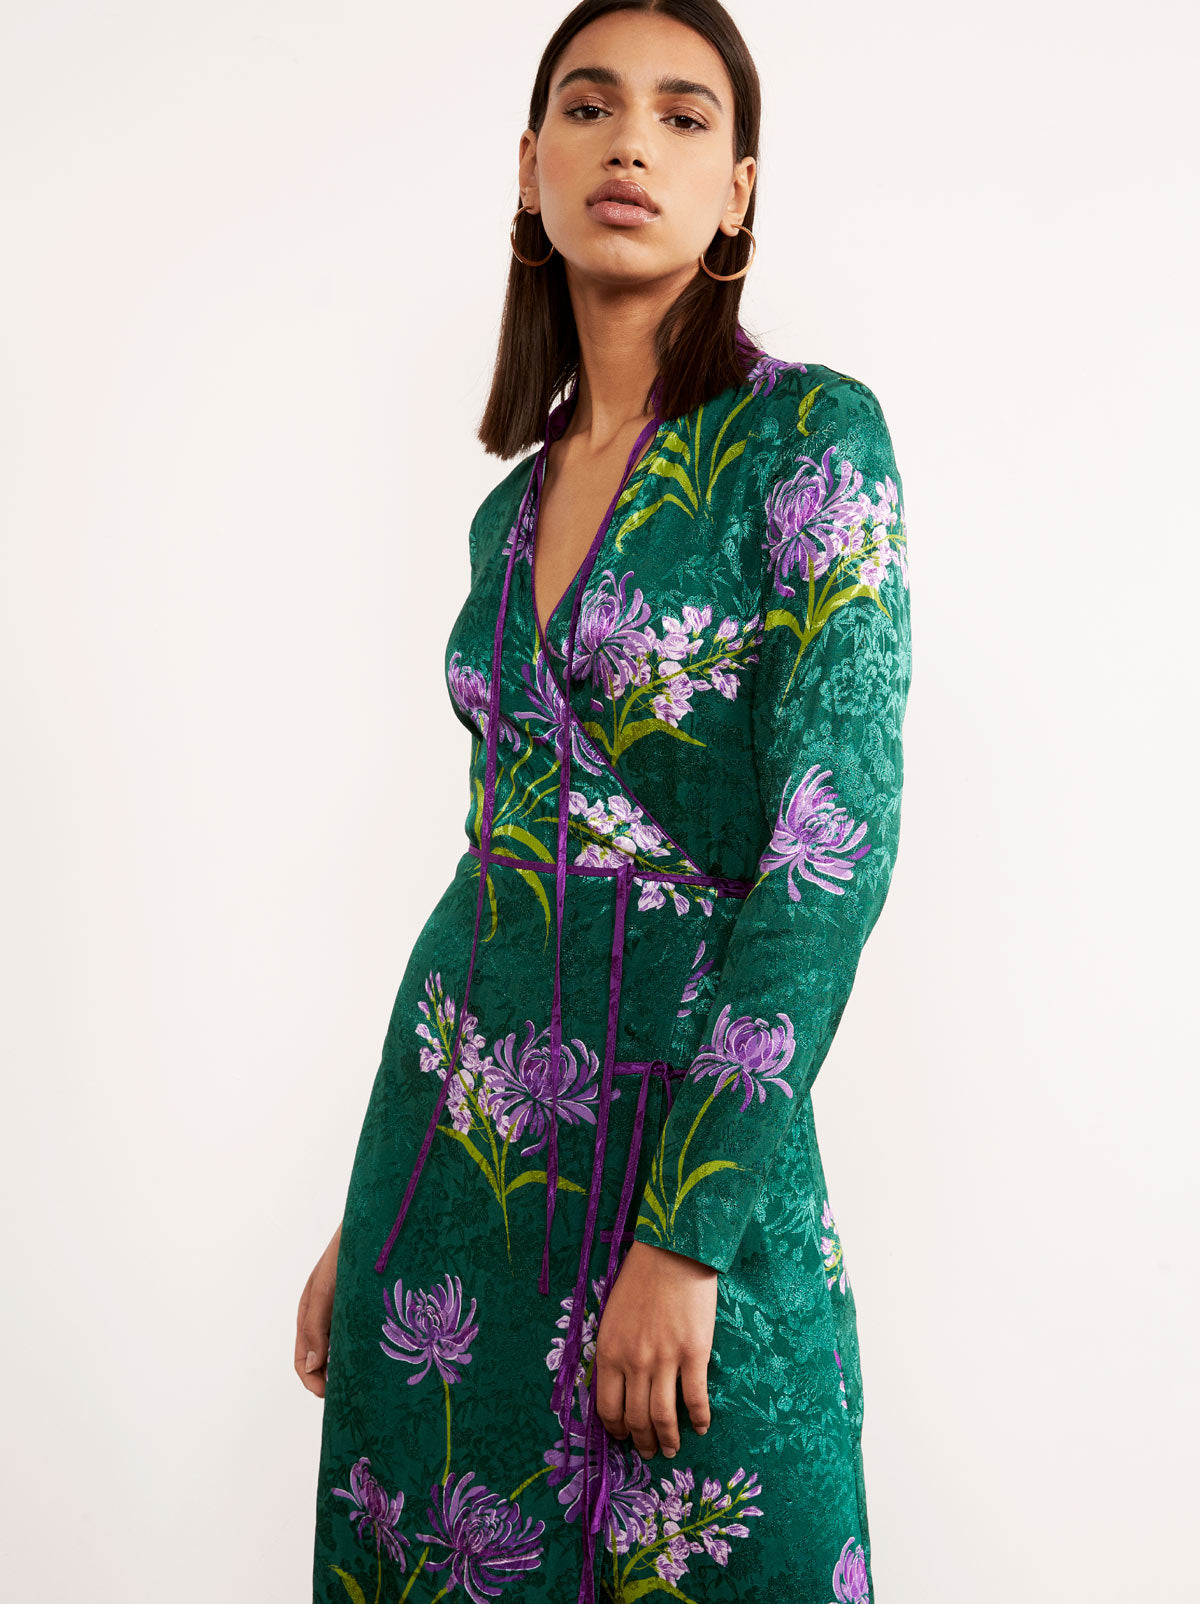 Frida Green Floral Print Midi Wrap Dress by KITRI Studio